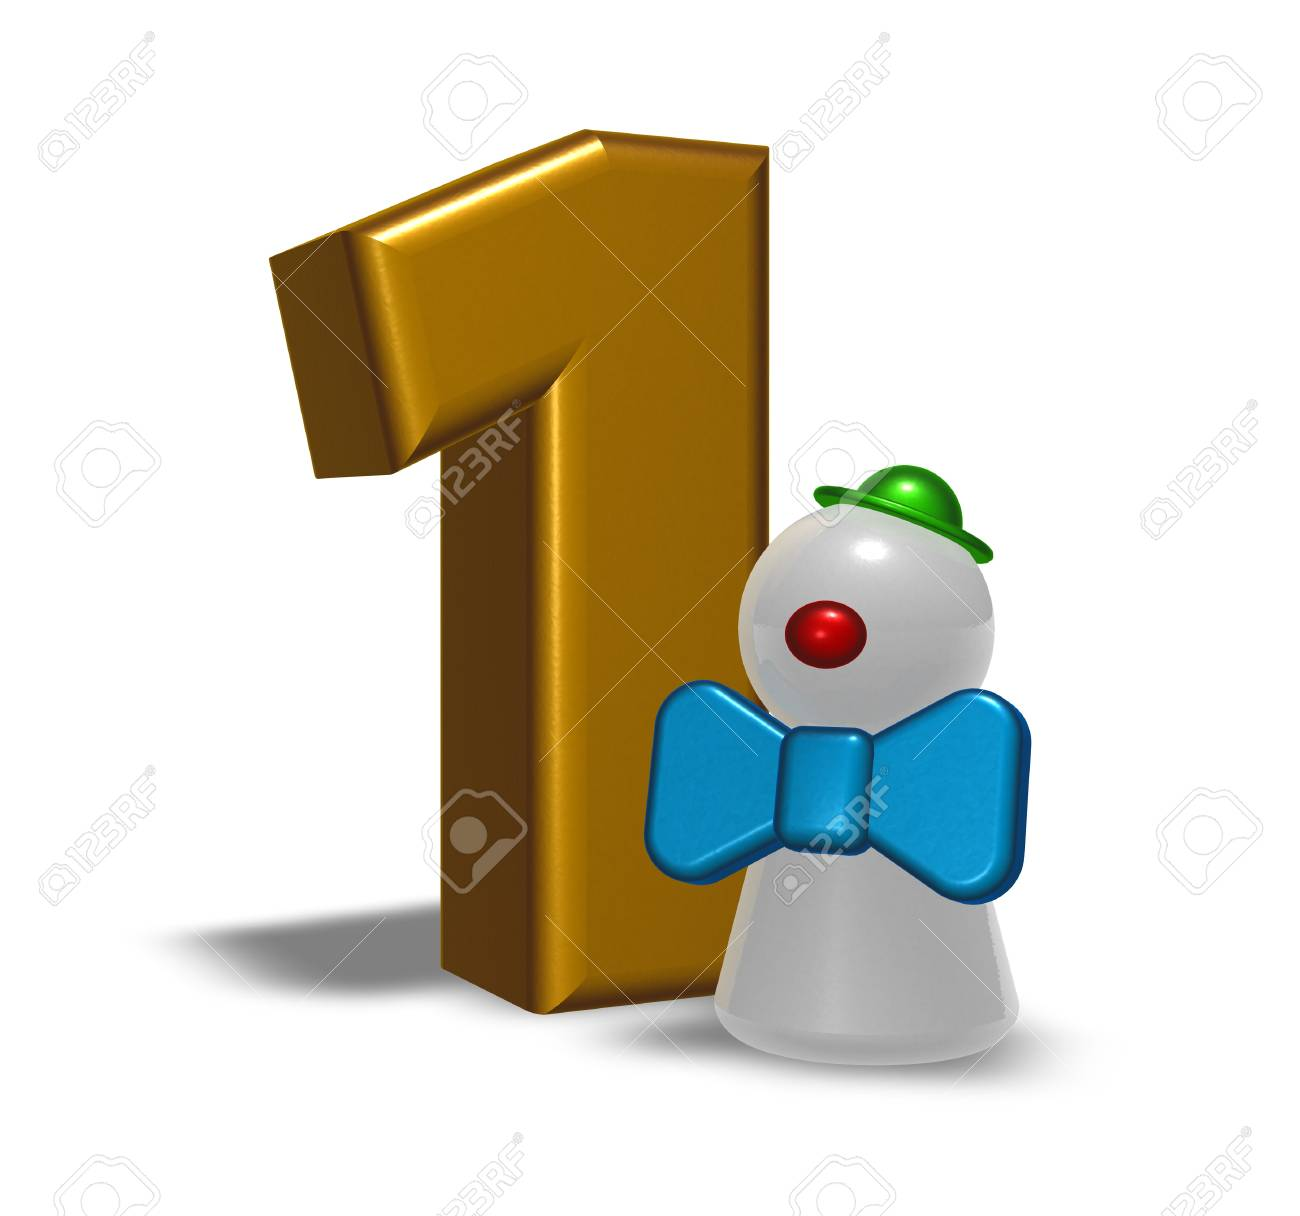 number one and clown - 3d illustration Stock Photo - 21775323